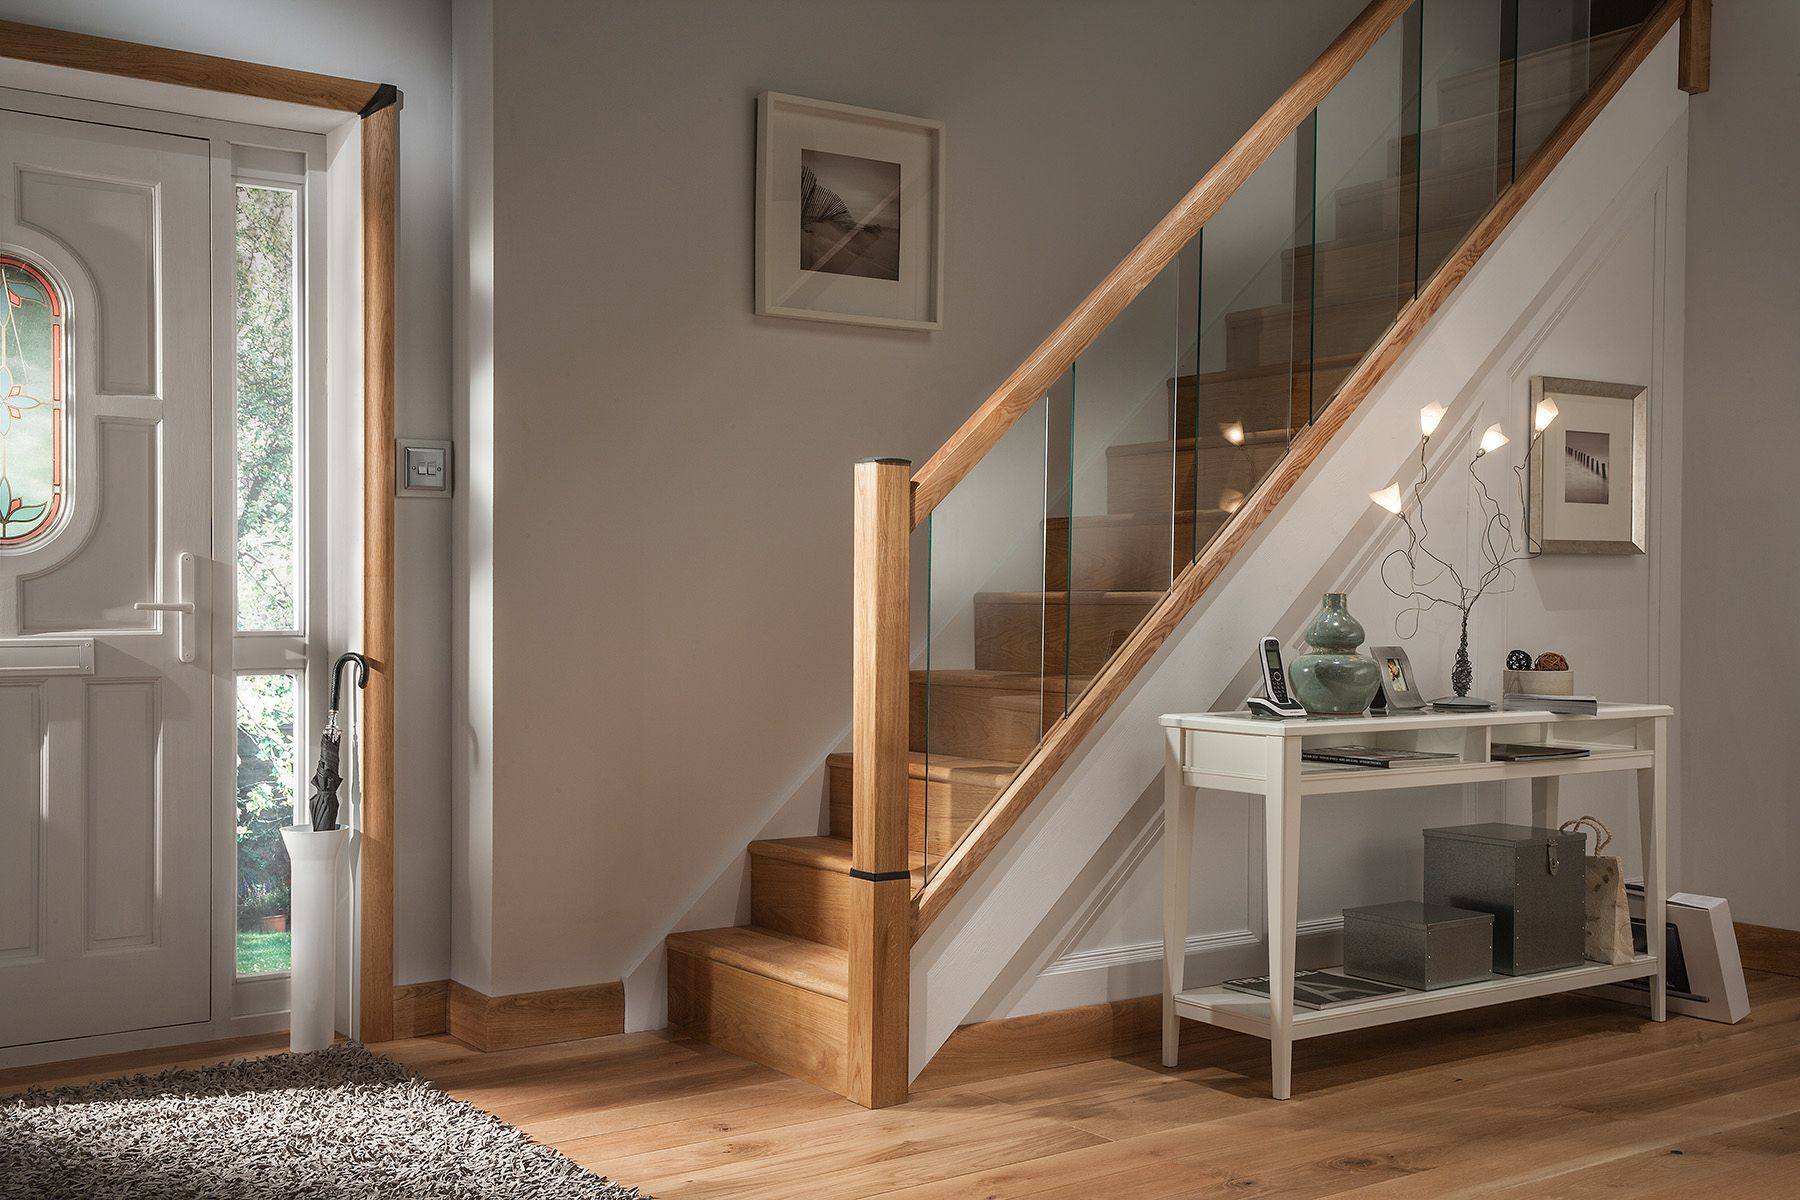 Best Cheshire Mouldings Reflections Range Staircase Design 640 x 480